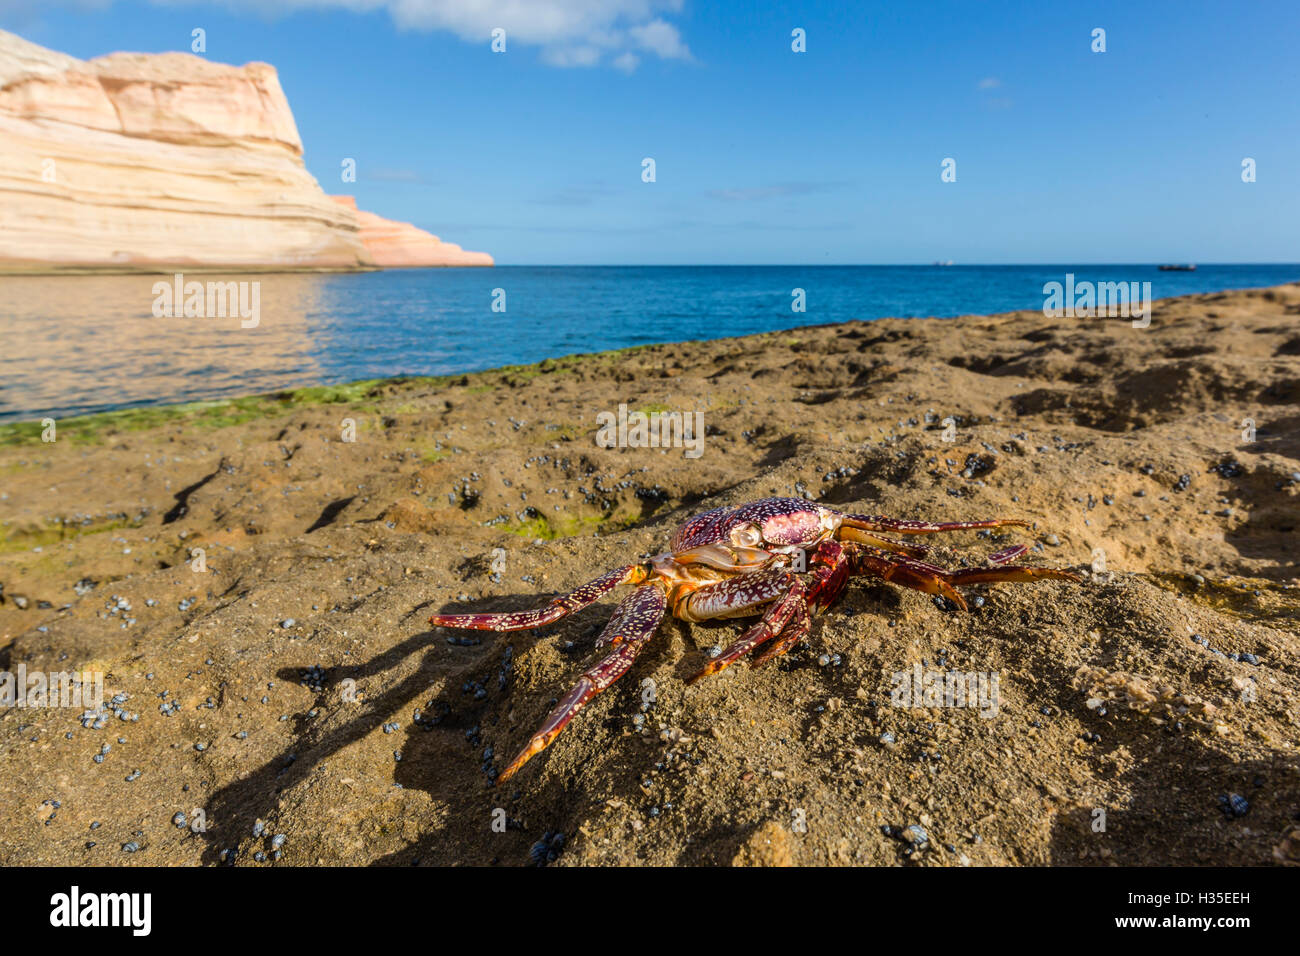 Sally lightfoot crab (Grapsus grapsus), moulted exoskeleton at Punta Colorado, Baja California Sur, Mexico - Stock Image